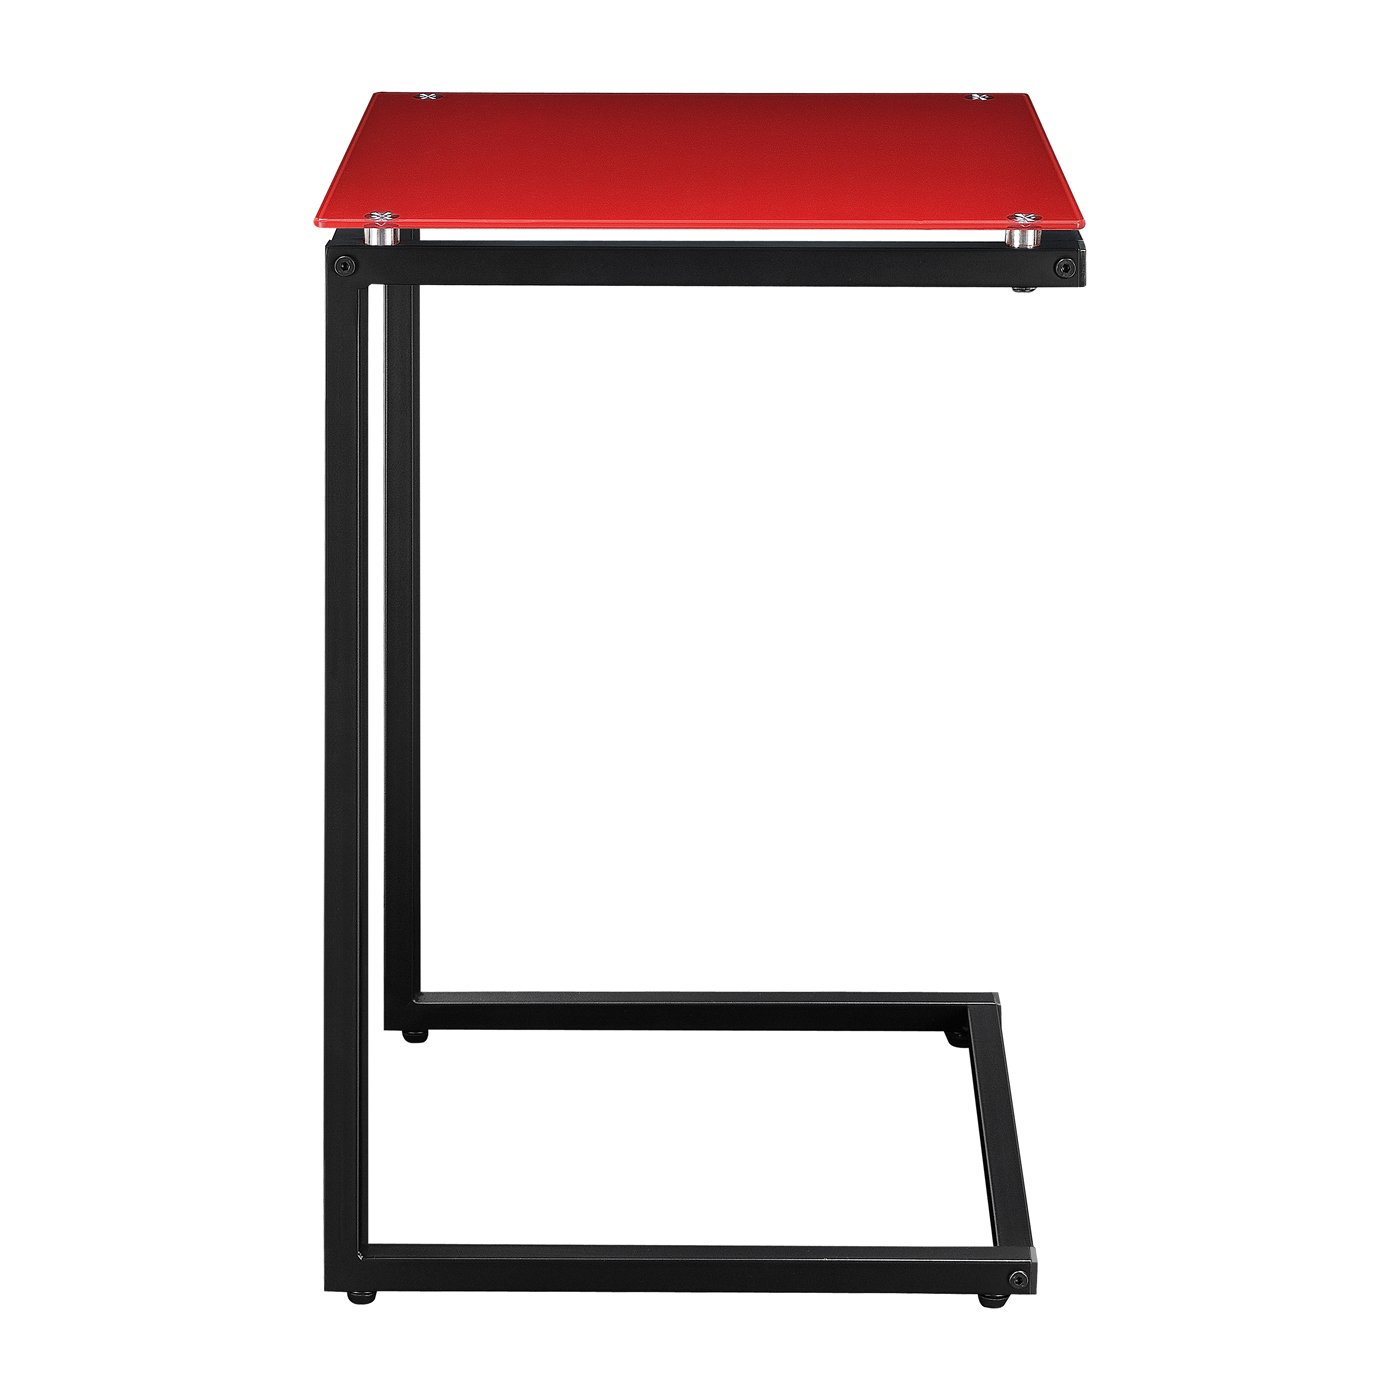 Luxurious C Table From IKEA : Modern C Table Design Red Iron Top Amazing  Furniture For